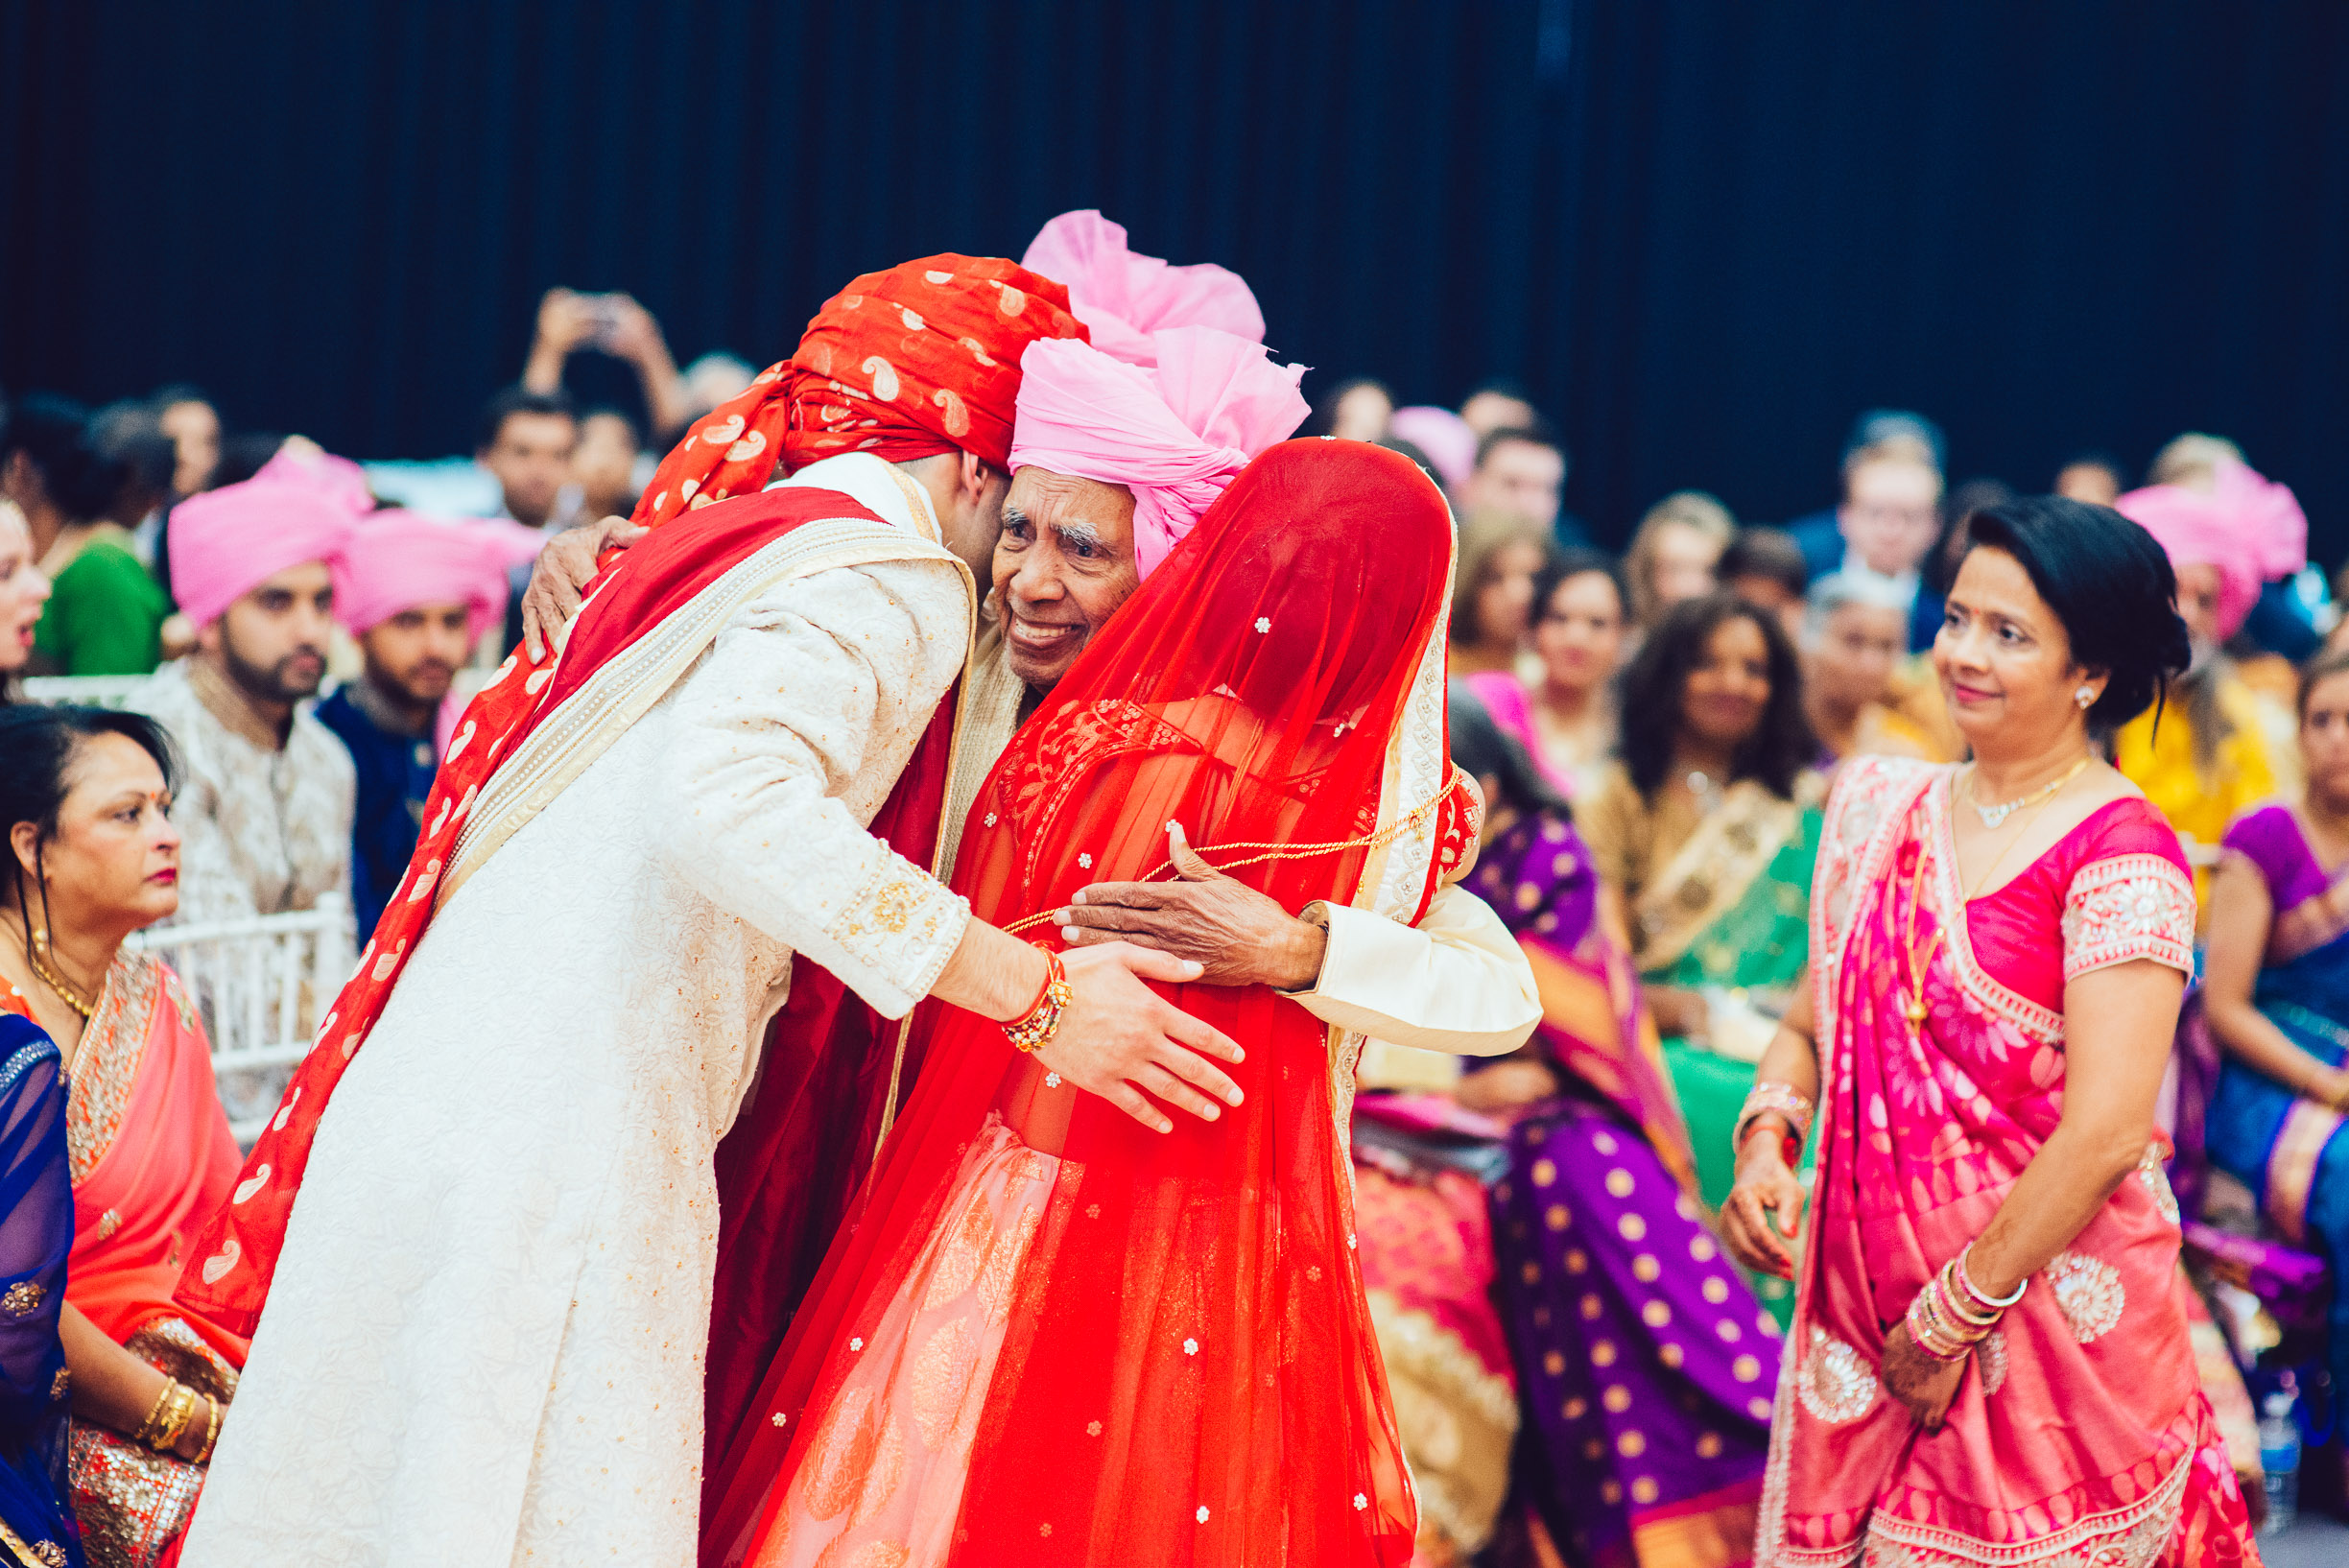 amit&ceema_eden_moments_wedding_photography-16